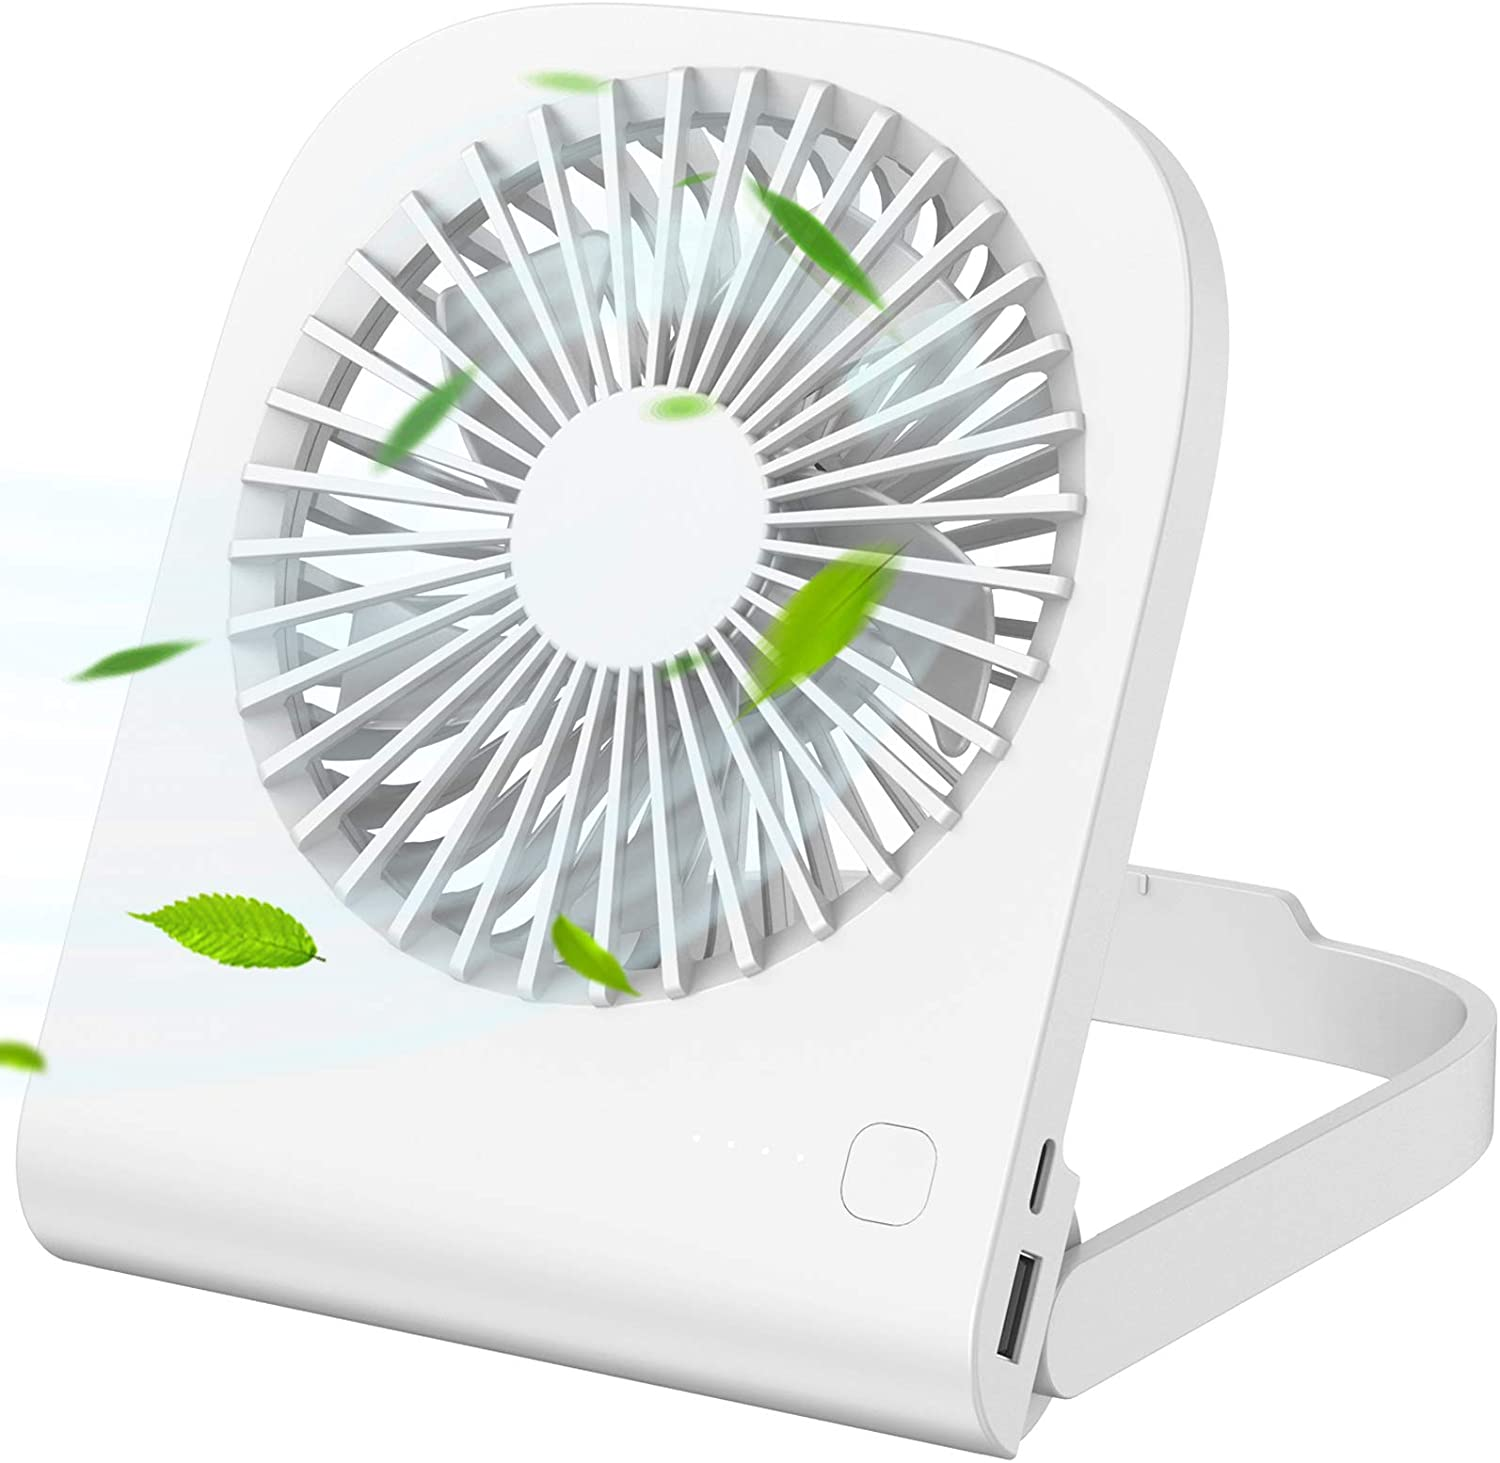 Personal USB Desk Fan, iHoven Mini Portable 14h Cooling Office Rechargeable Small Table Fan, 4800mah Quiet Battery Operated Desktop Fan Adjustable for Home Office Car Outdoor Travel White (white)